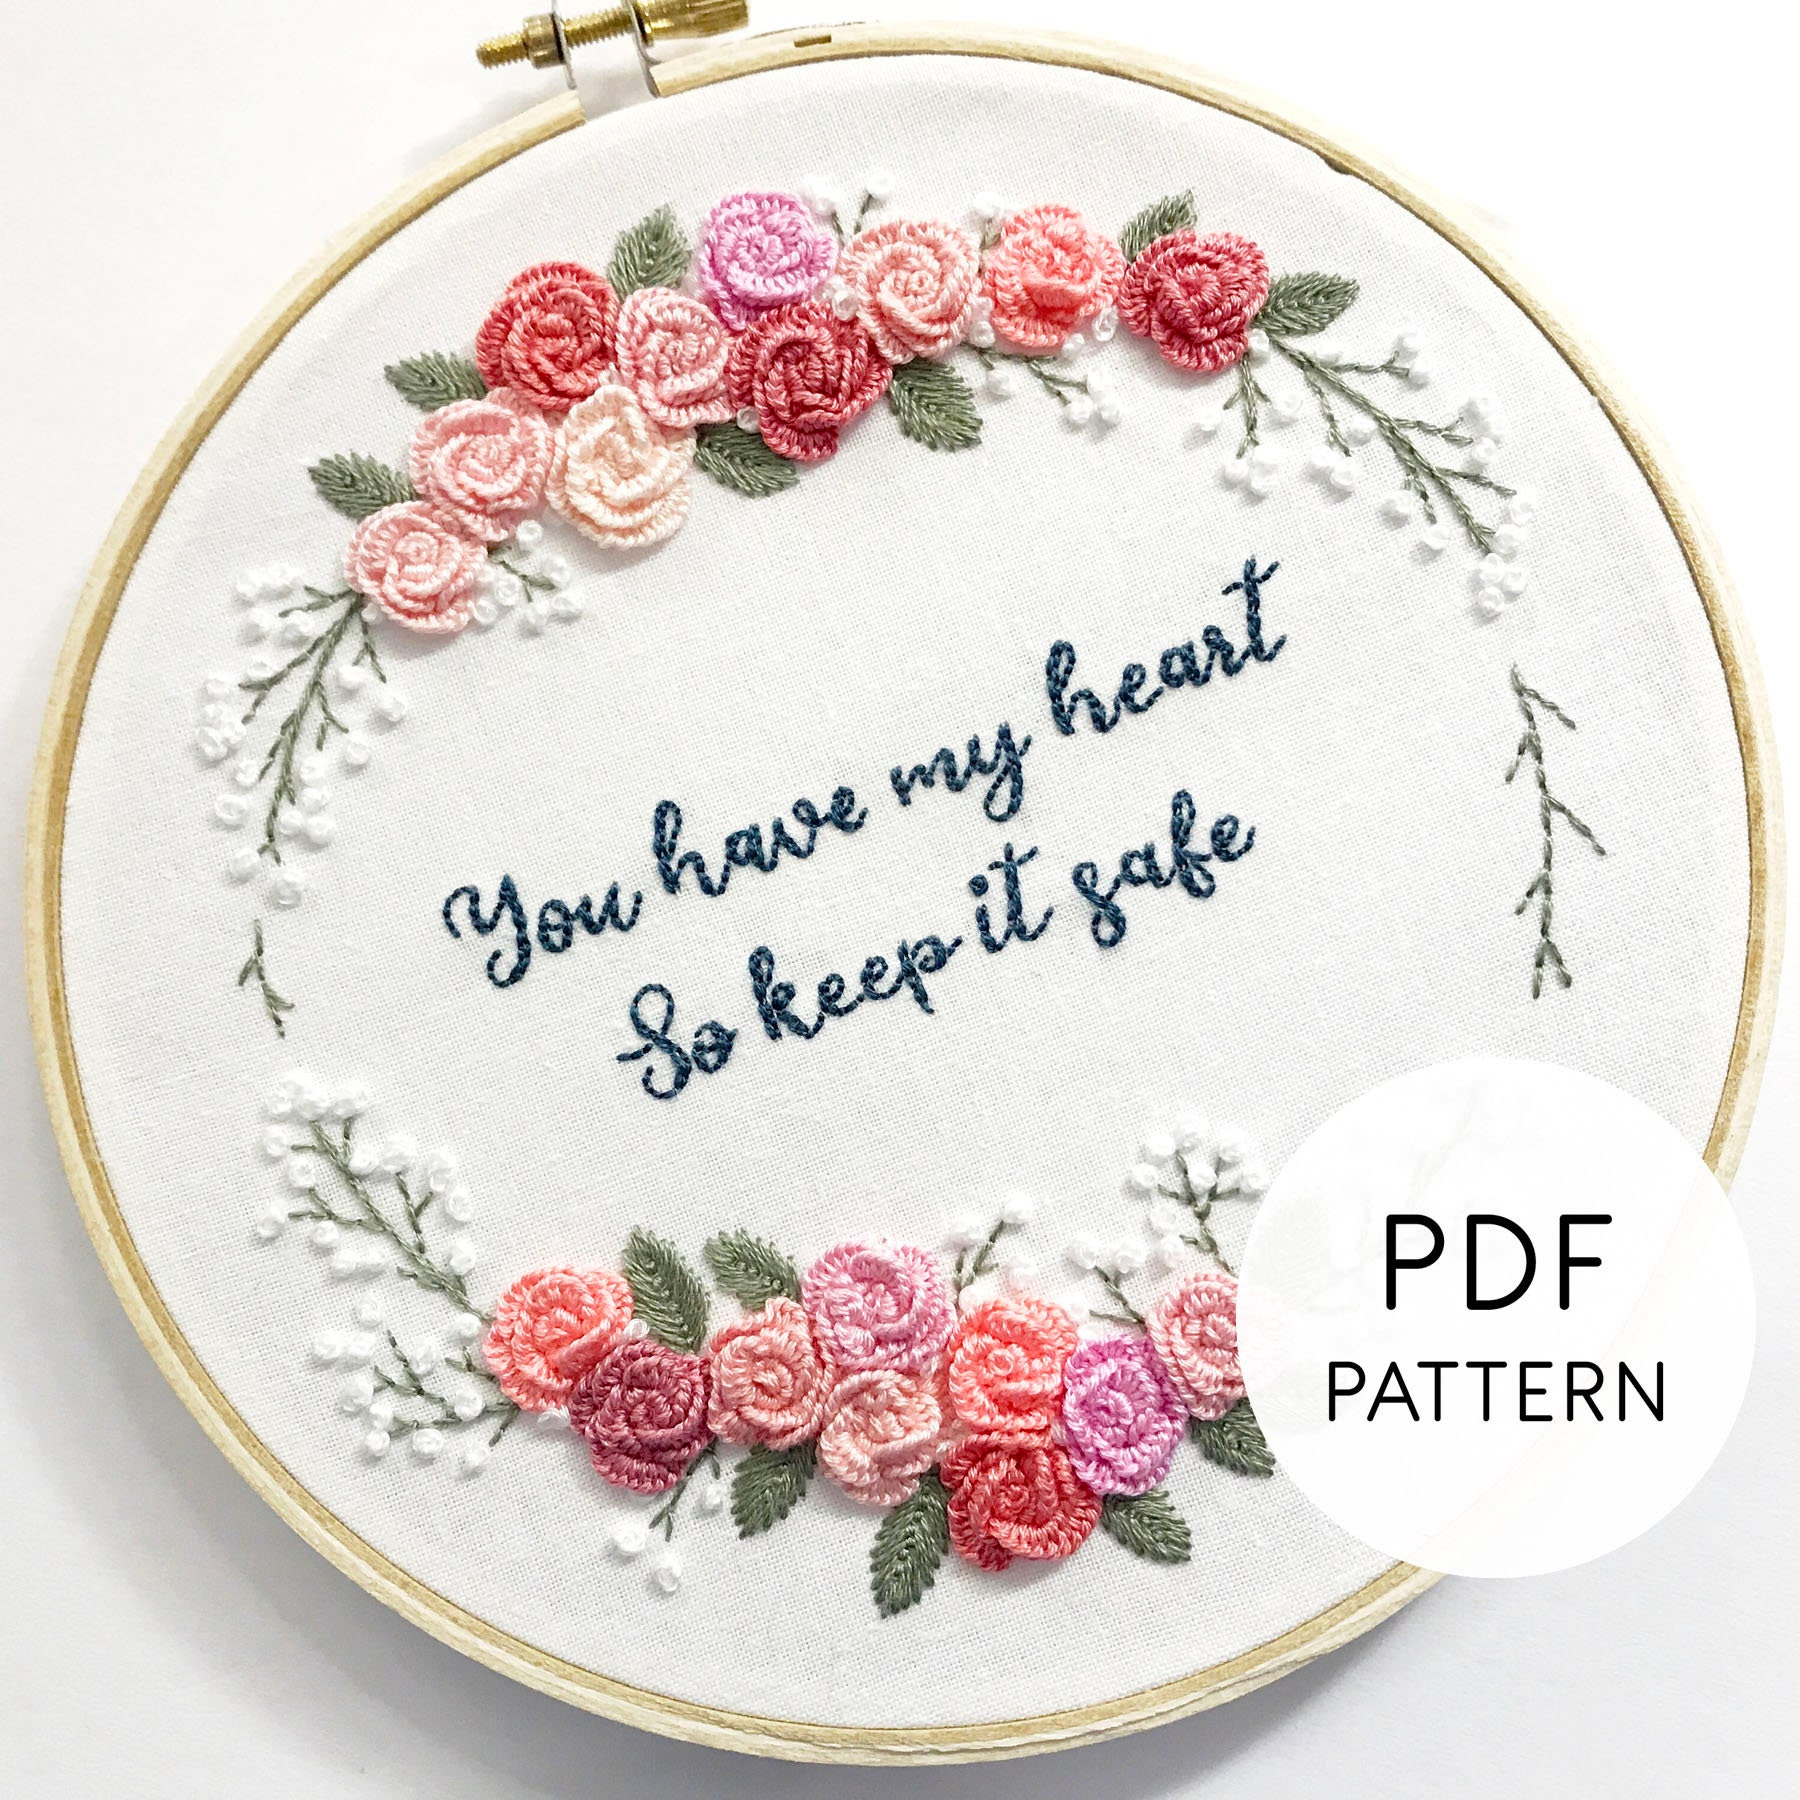 Hand Embroidery Pattern PDF Floral Embroidery Design,  Anniversary/Wedding/Valentines Pattern Rose Flower Wreath, Printable  Pattern Download